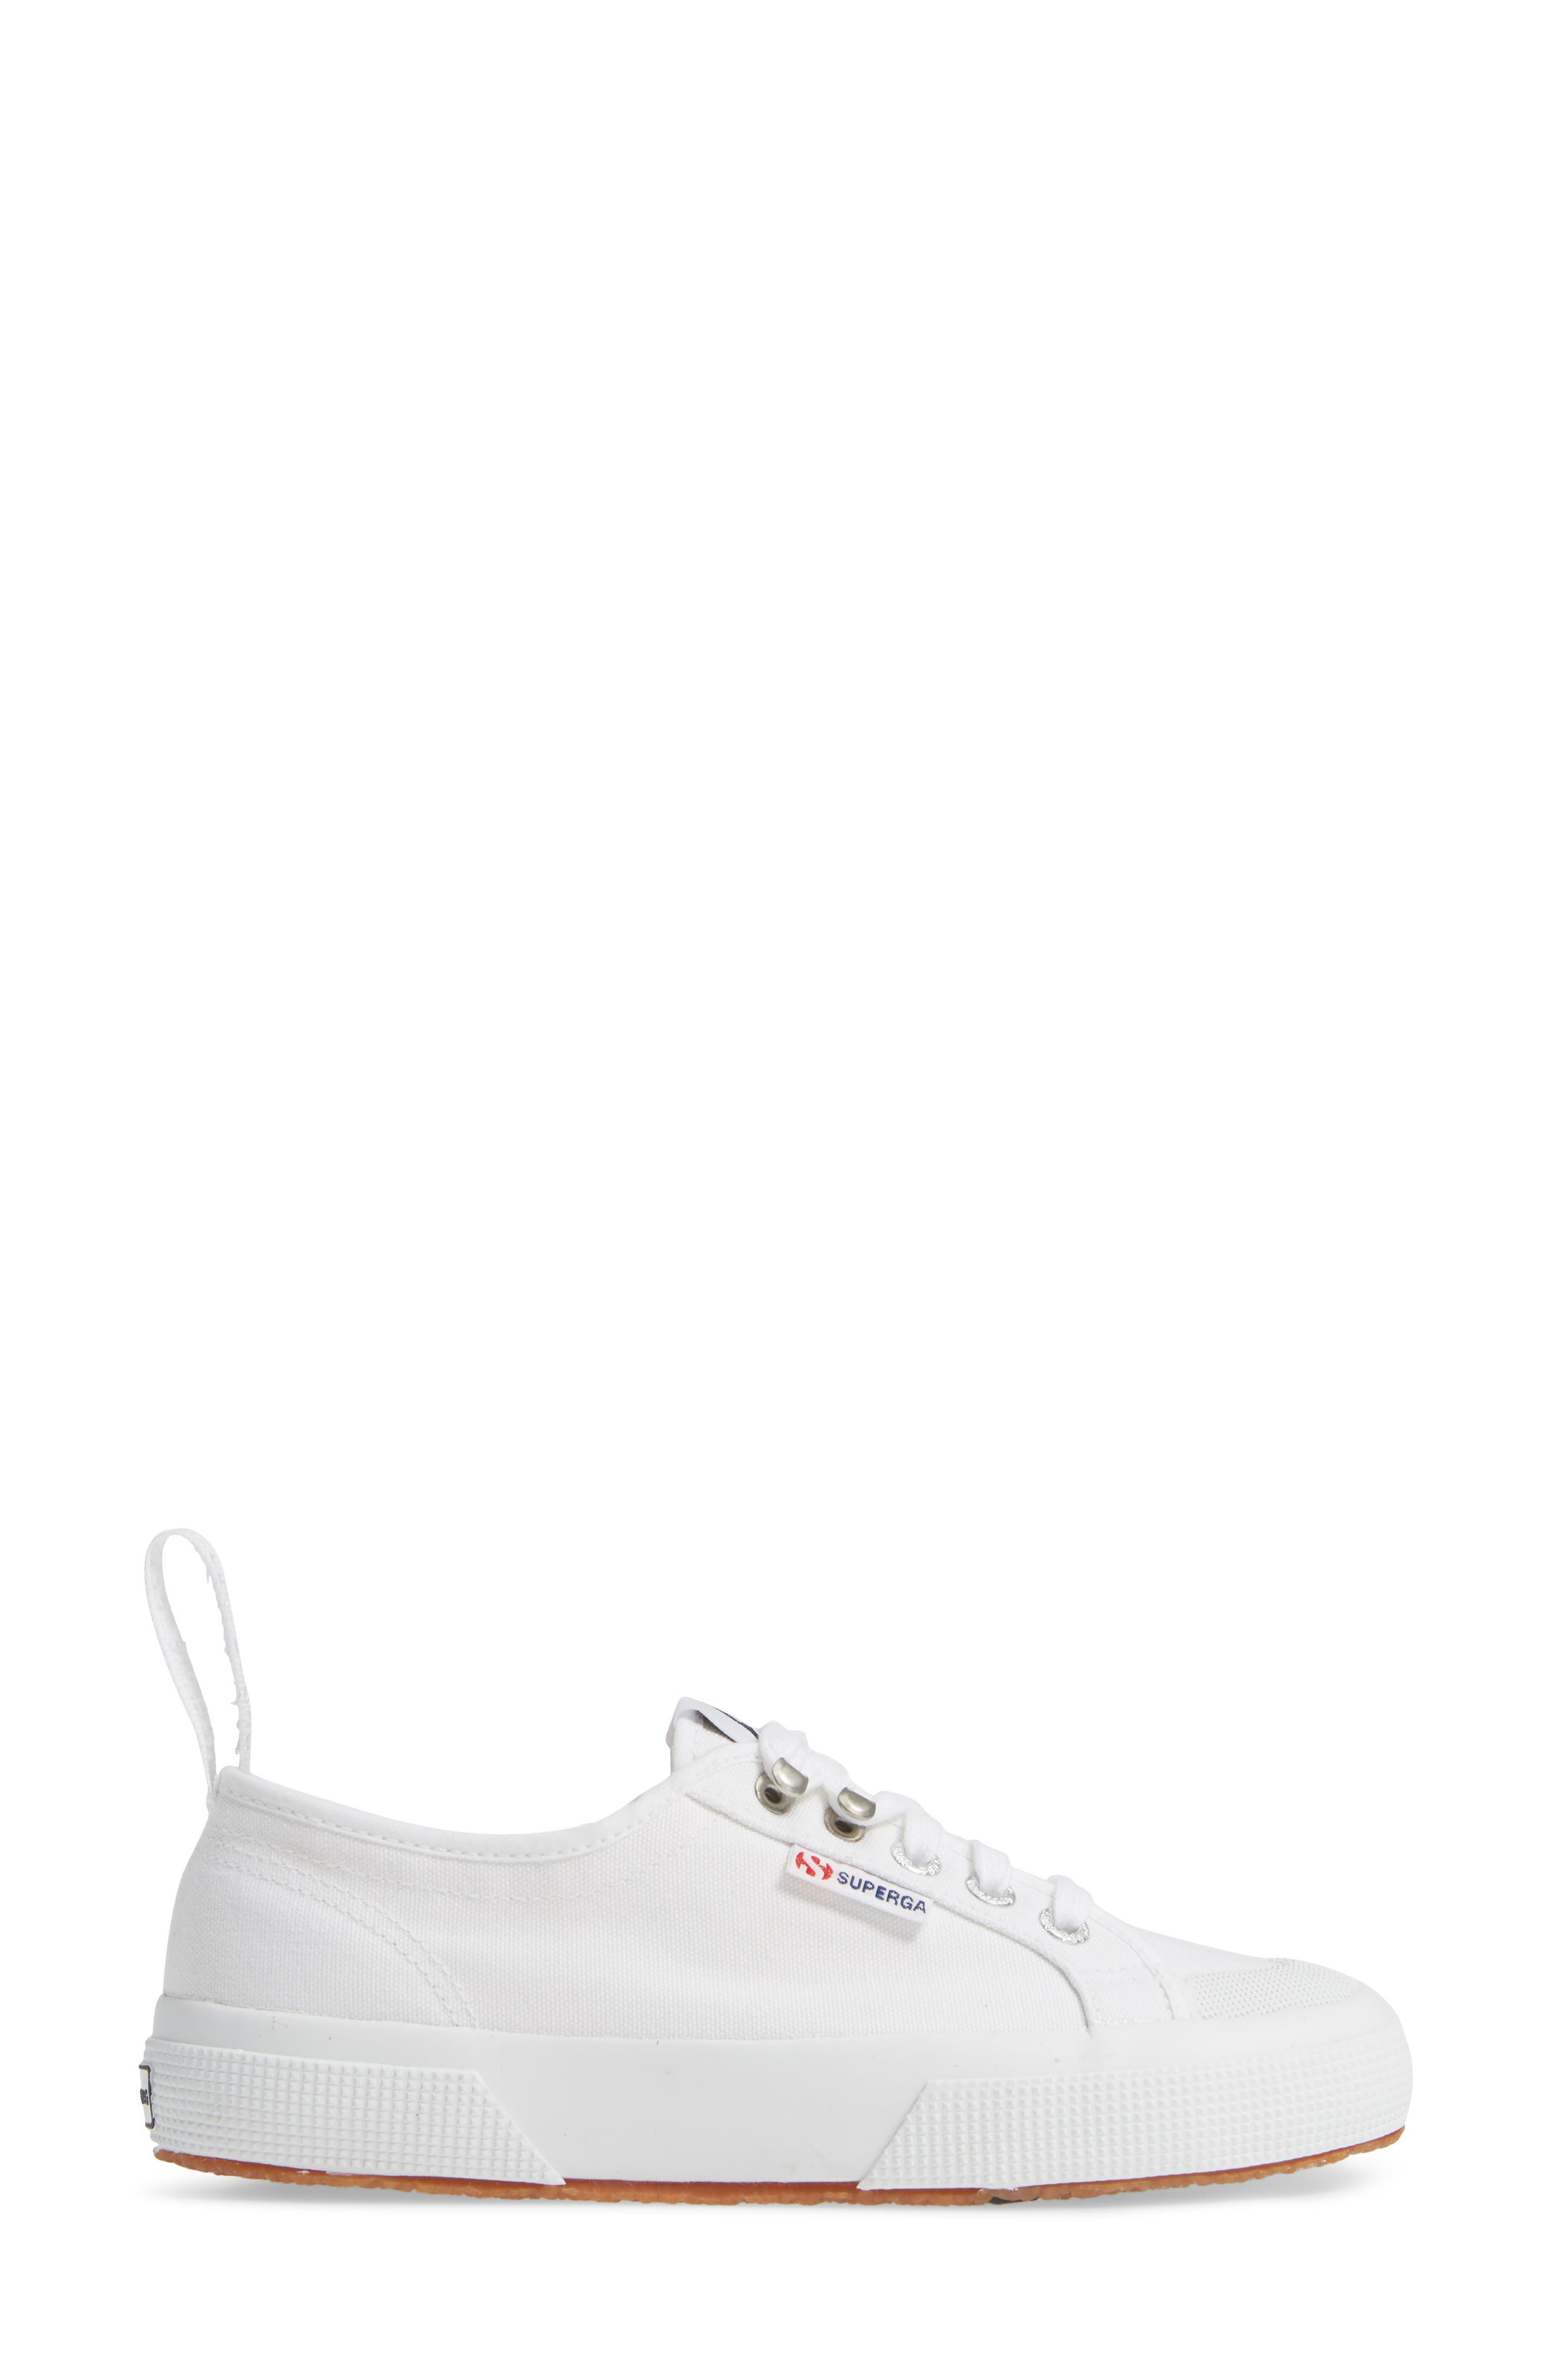 x Alexa Chung 2294 Cothookw Low Top Sneaker,                             Alternate thumbnail 3, color,                             WHITE